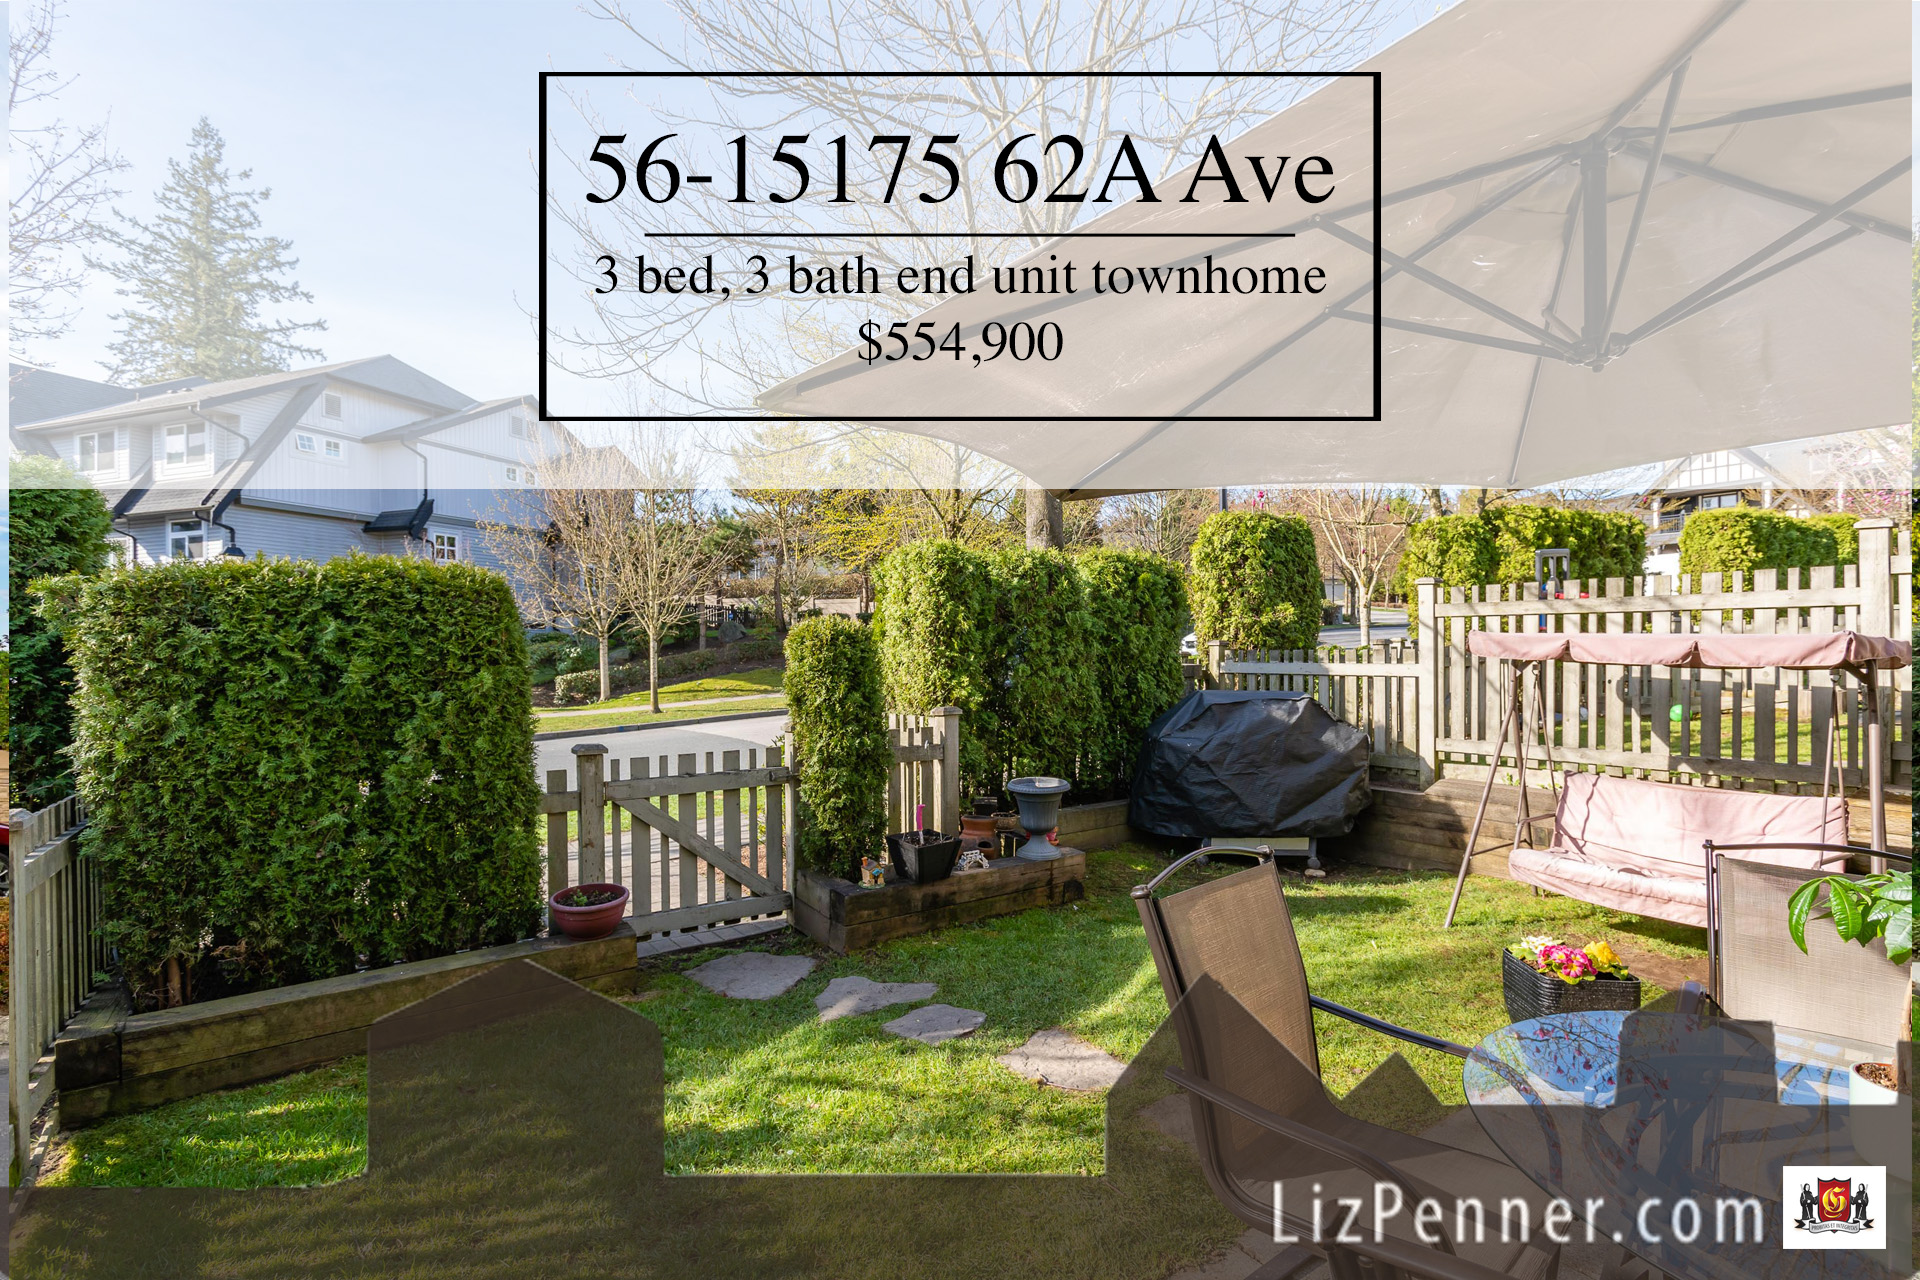 56-15175 62 Ave.